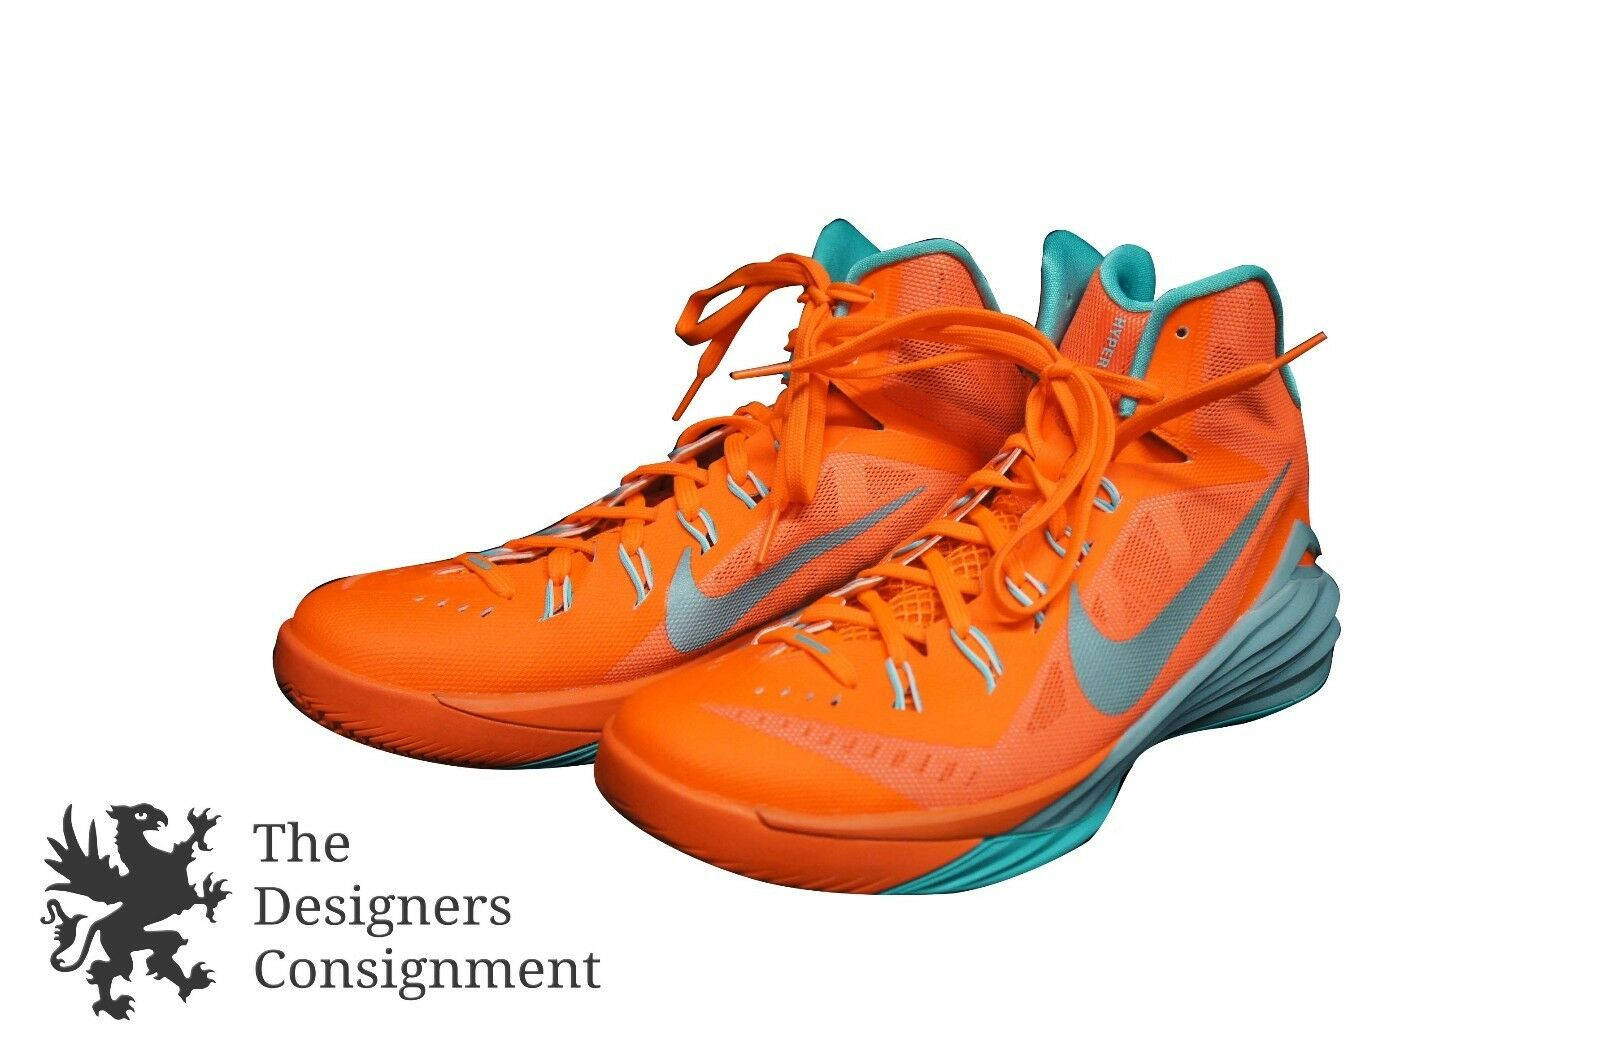 Nike Lunarlon Hyperdunk Zoom Sneakers Basketball shoes Neon orange Turquoise